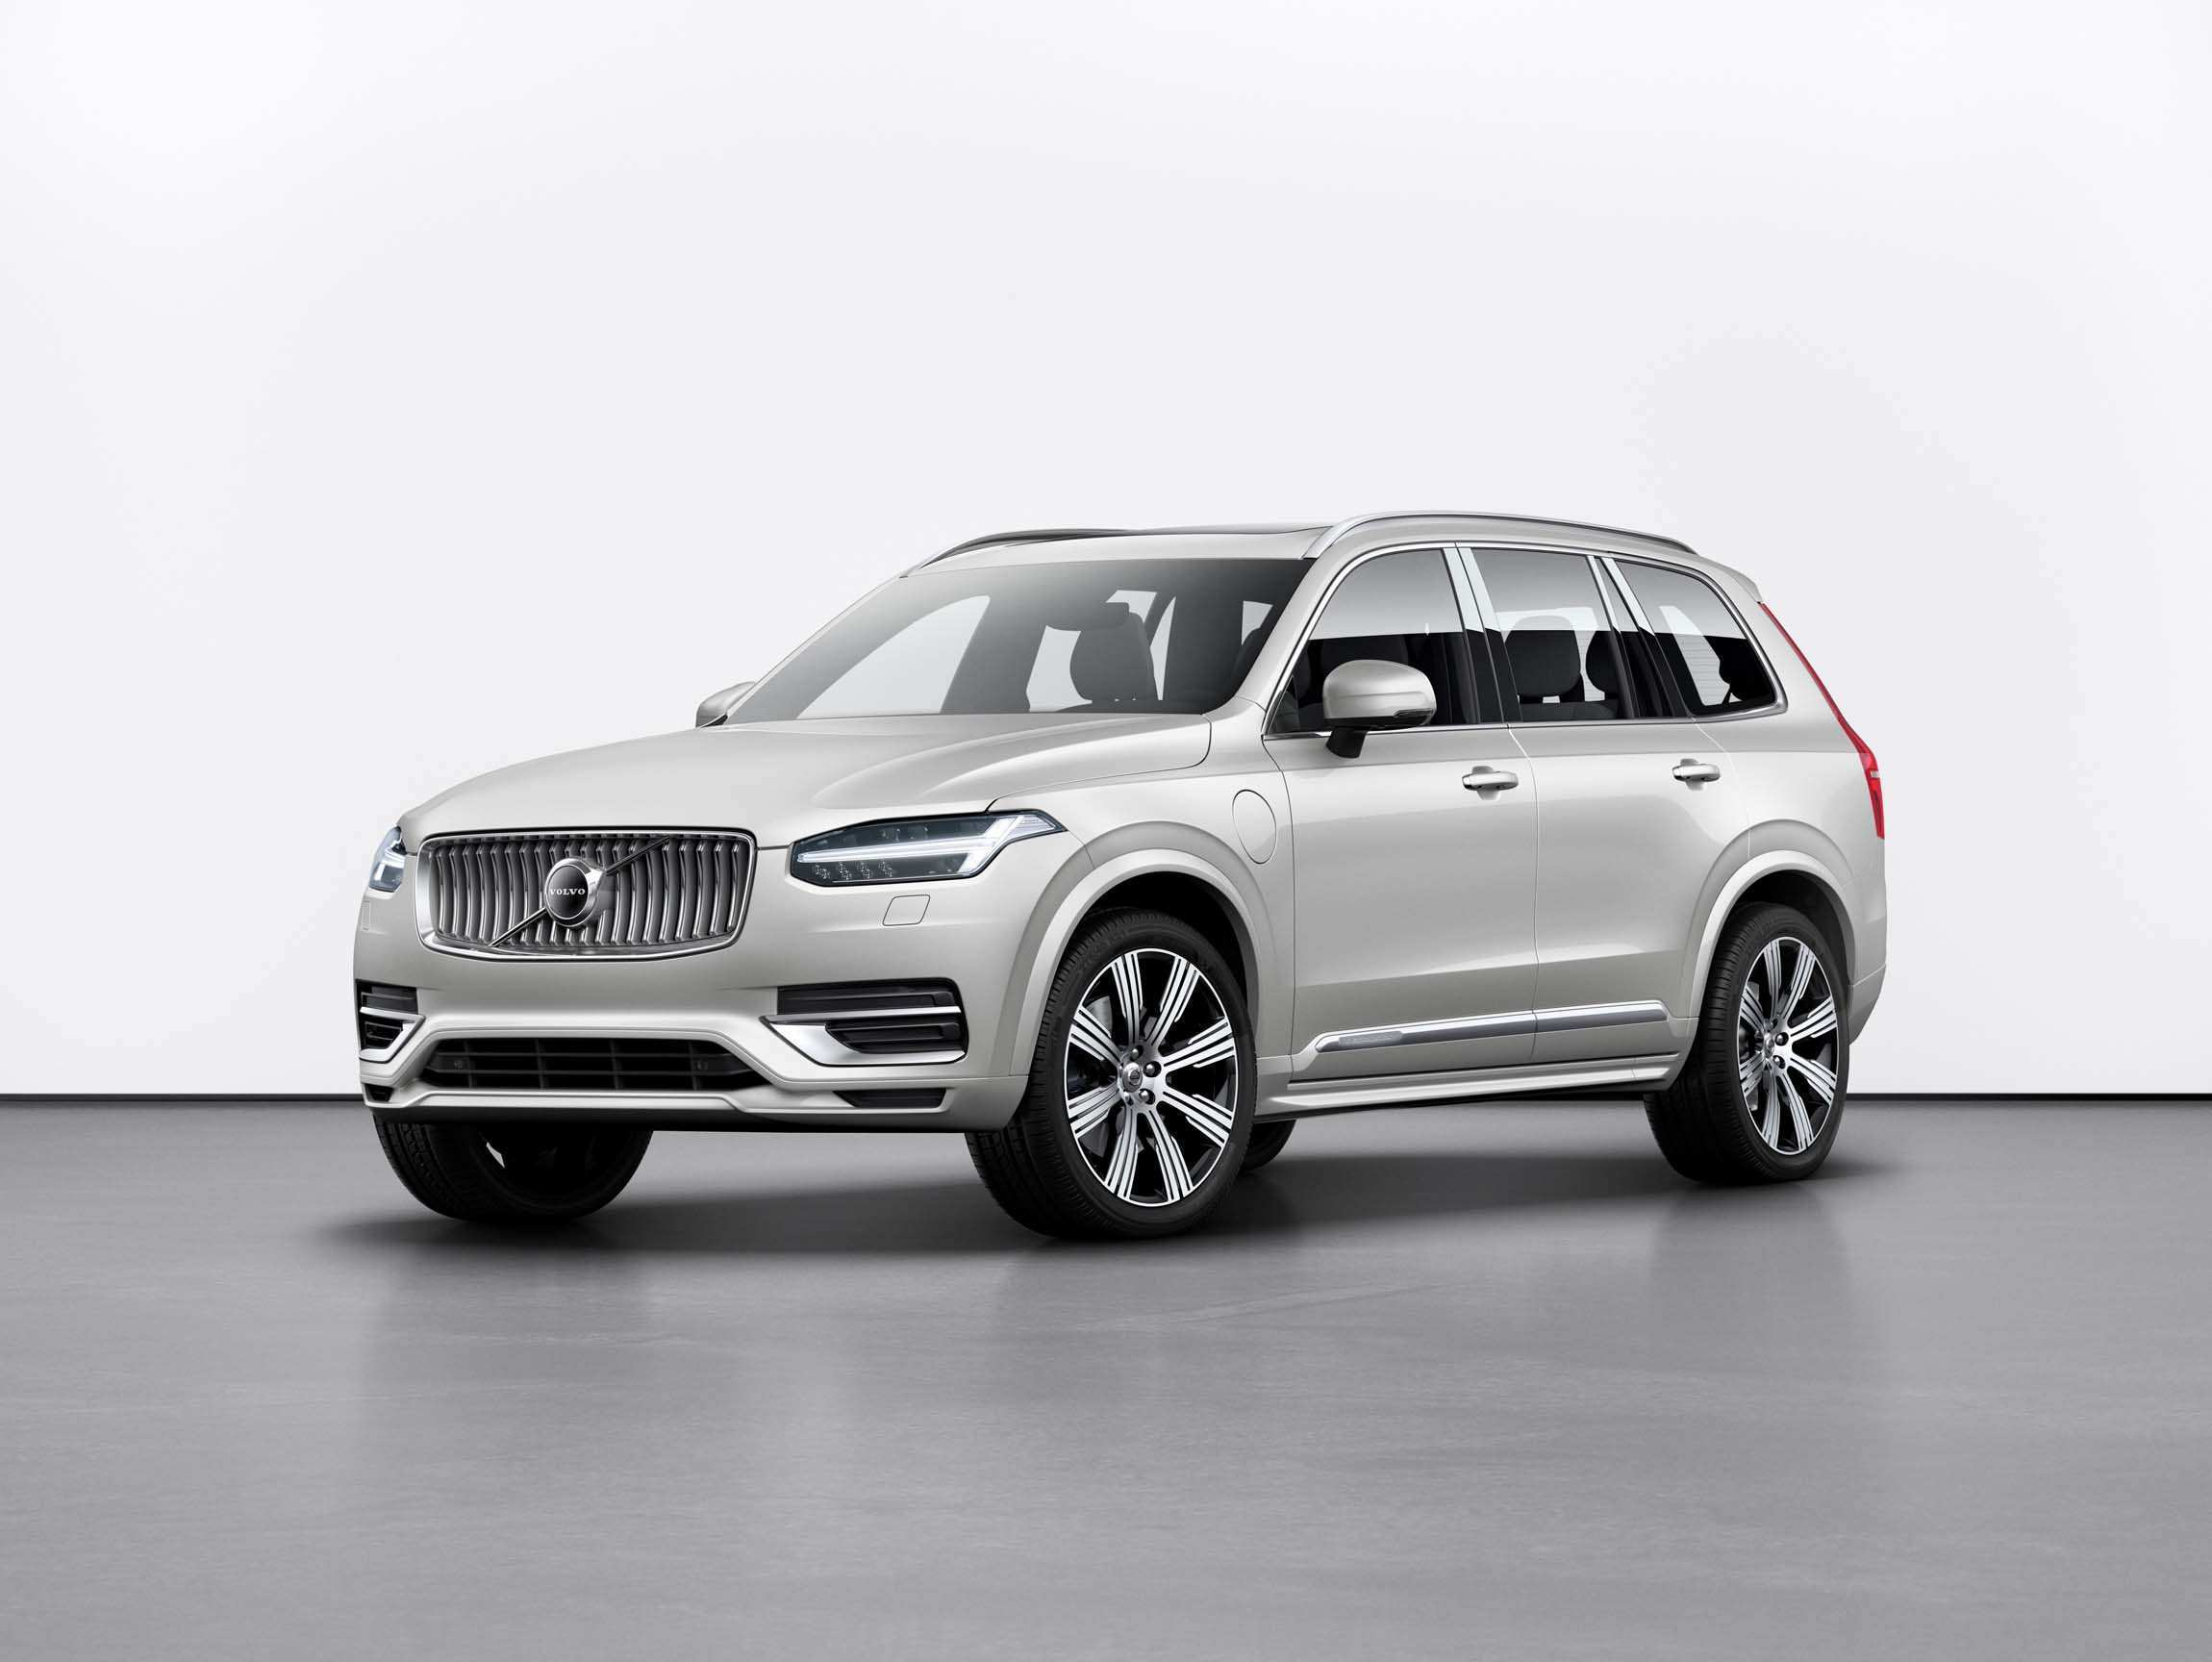 94 A Volvo Suv 2020 Overview